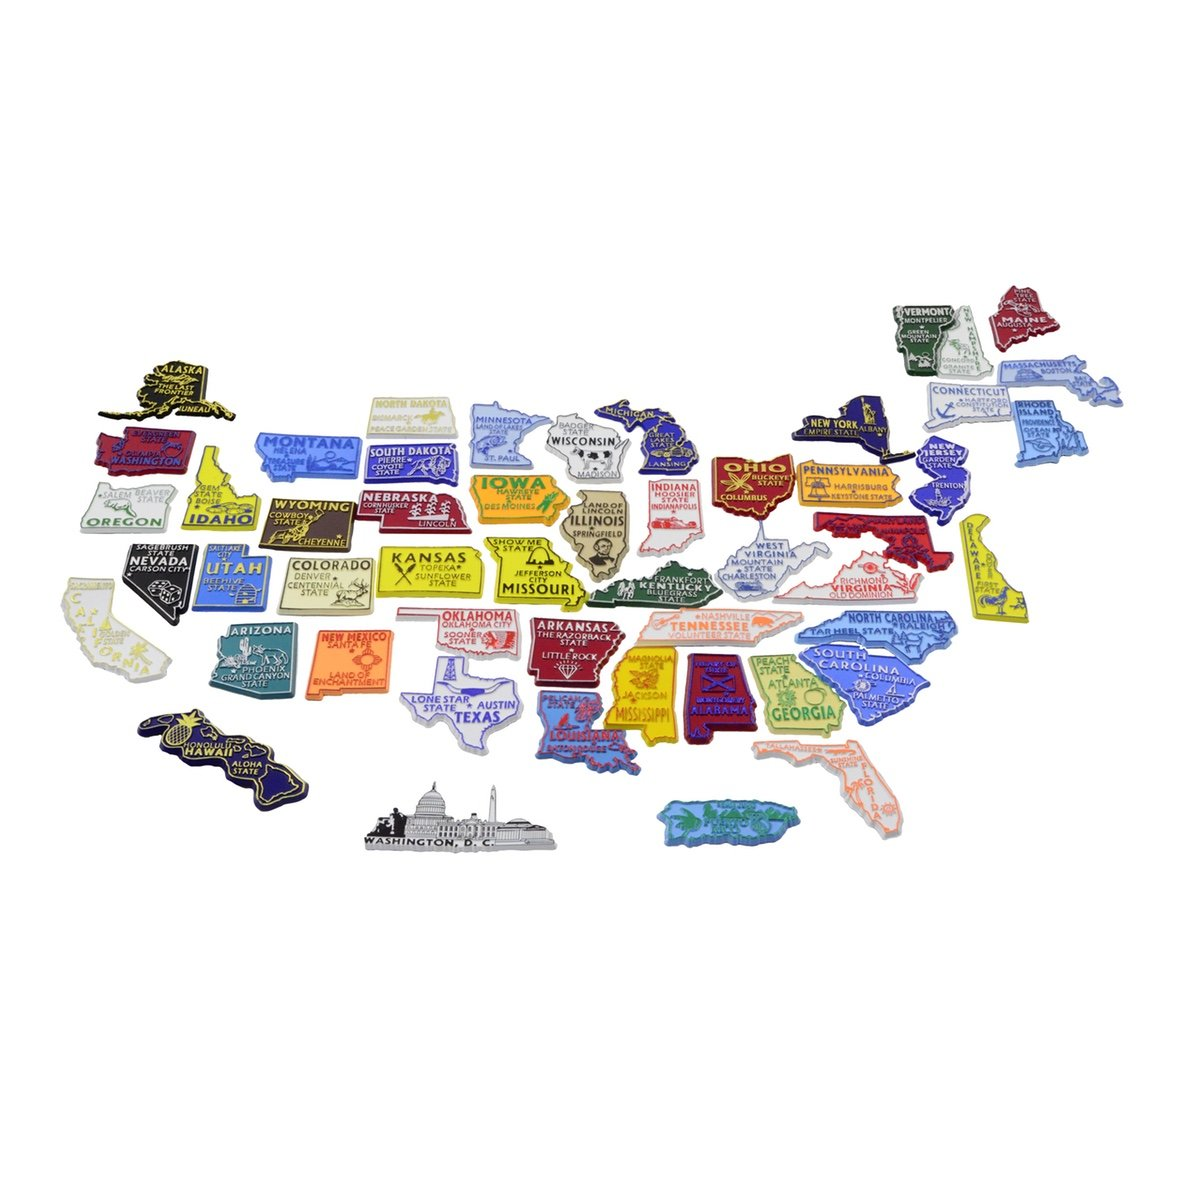 United States All 50 US State Fridge Magnets & Puerto Rico PR Magnet by TG,LLC